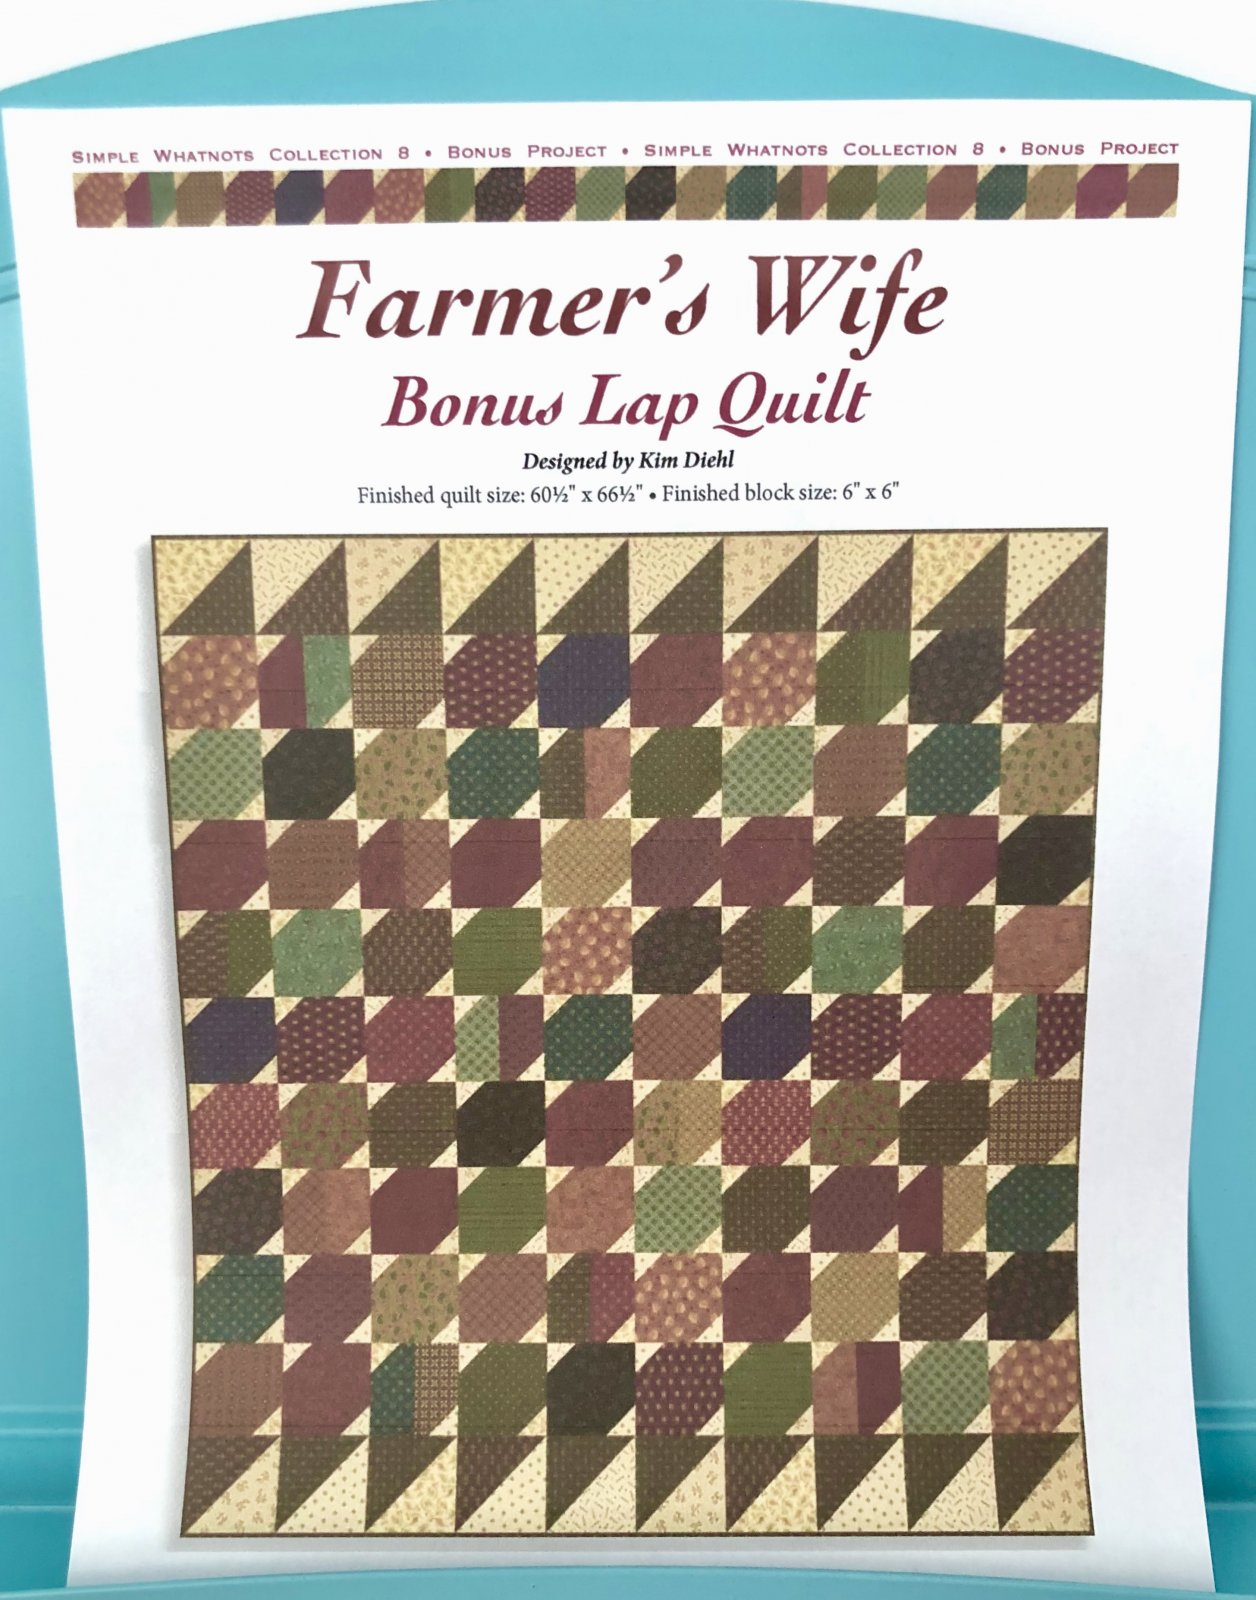 Farmer's Wife Quilt Kit